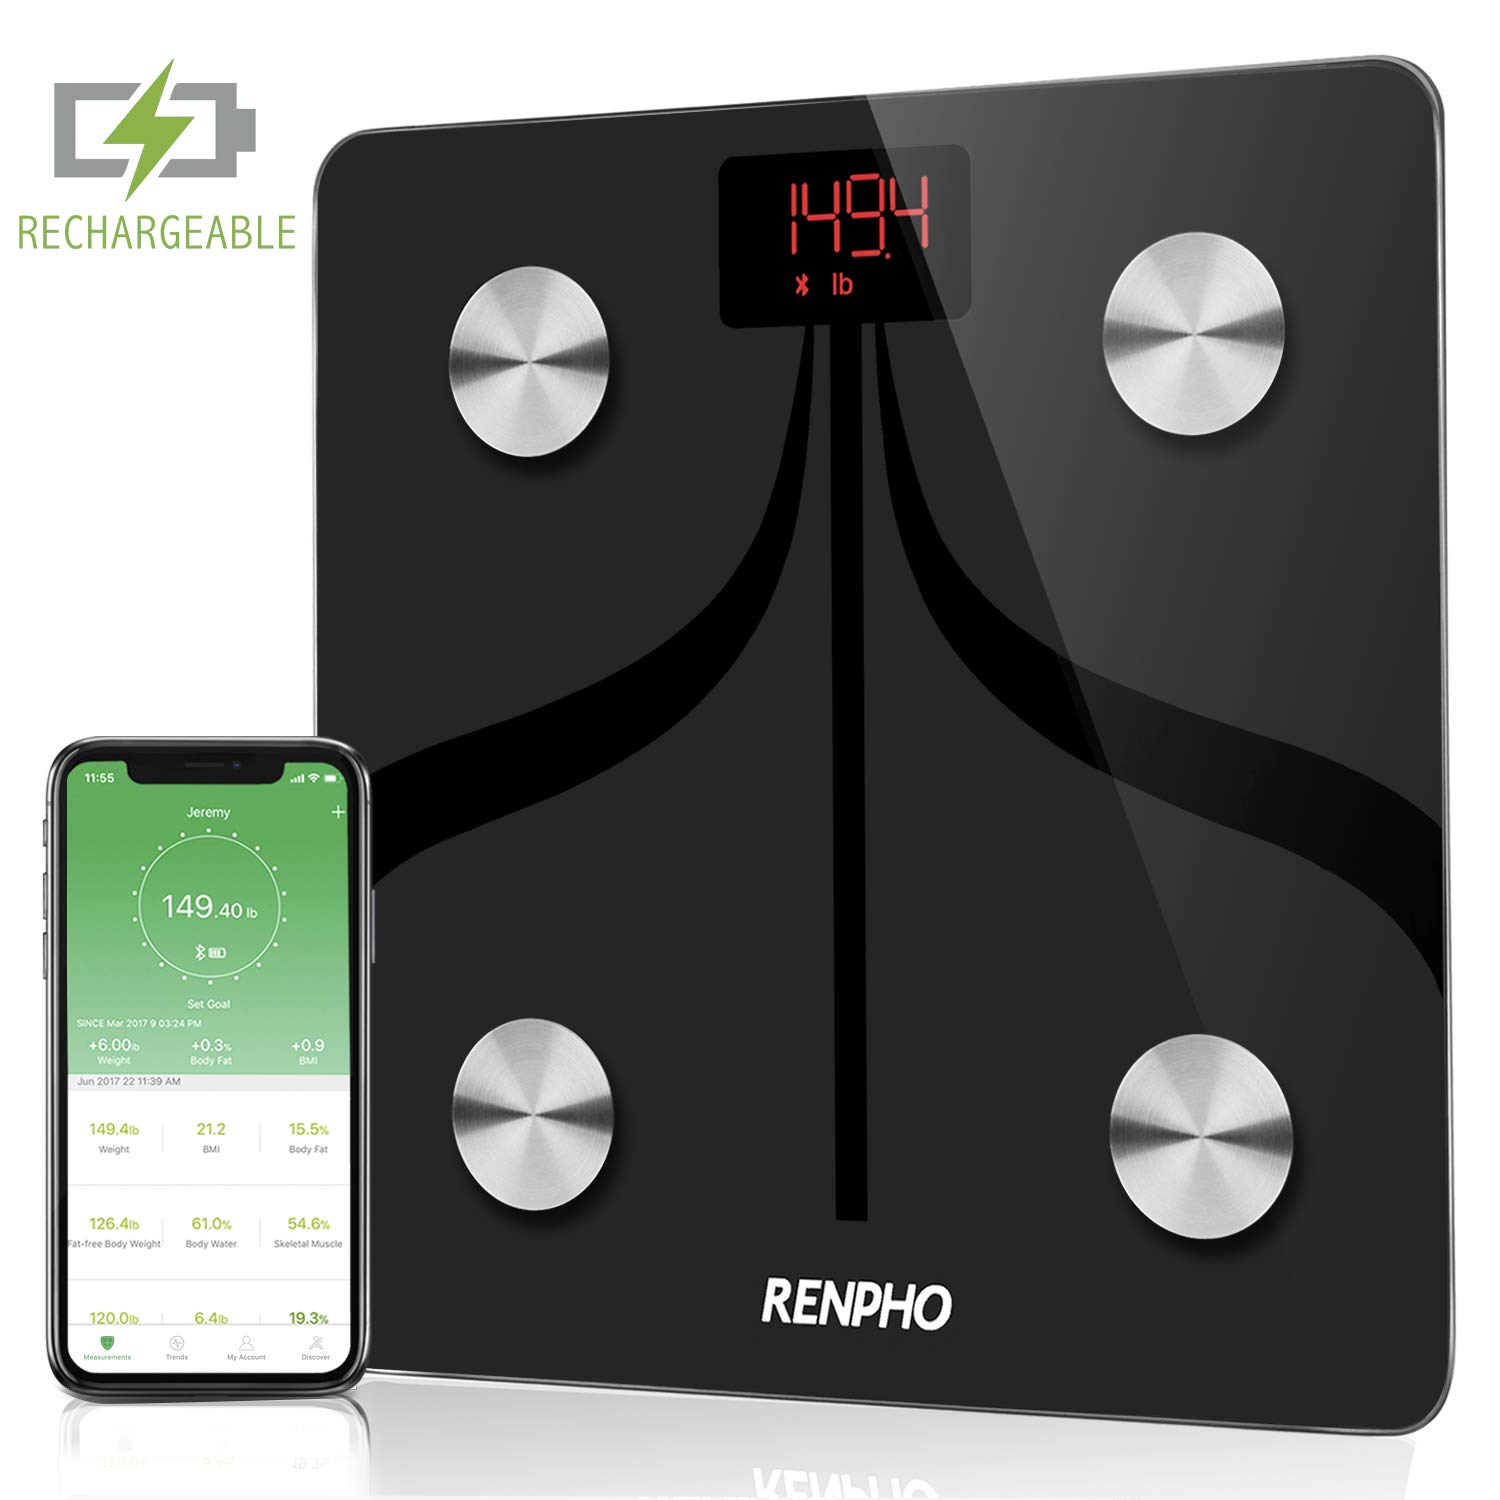 RENPHO USB Chargeable Bluetooth Body Fat Scale Smart Digital Bathroom Scale with Smartphone App, Body Composition Monitor for Body Fat, BMI, Bone Mass, Weight, 396 lbs Black by RENPHO